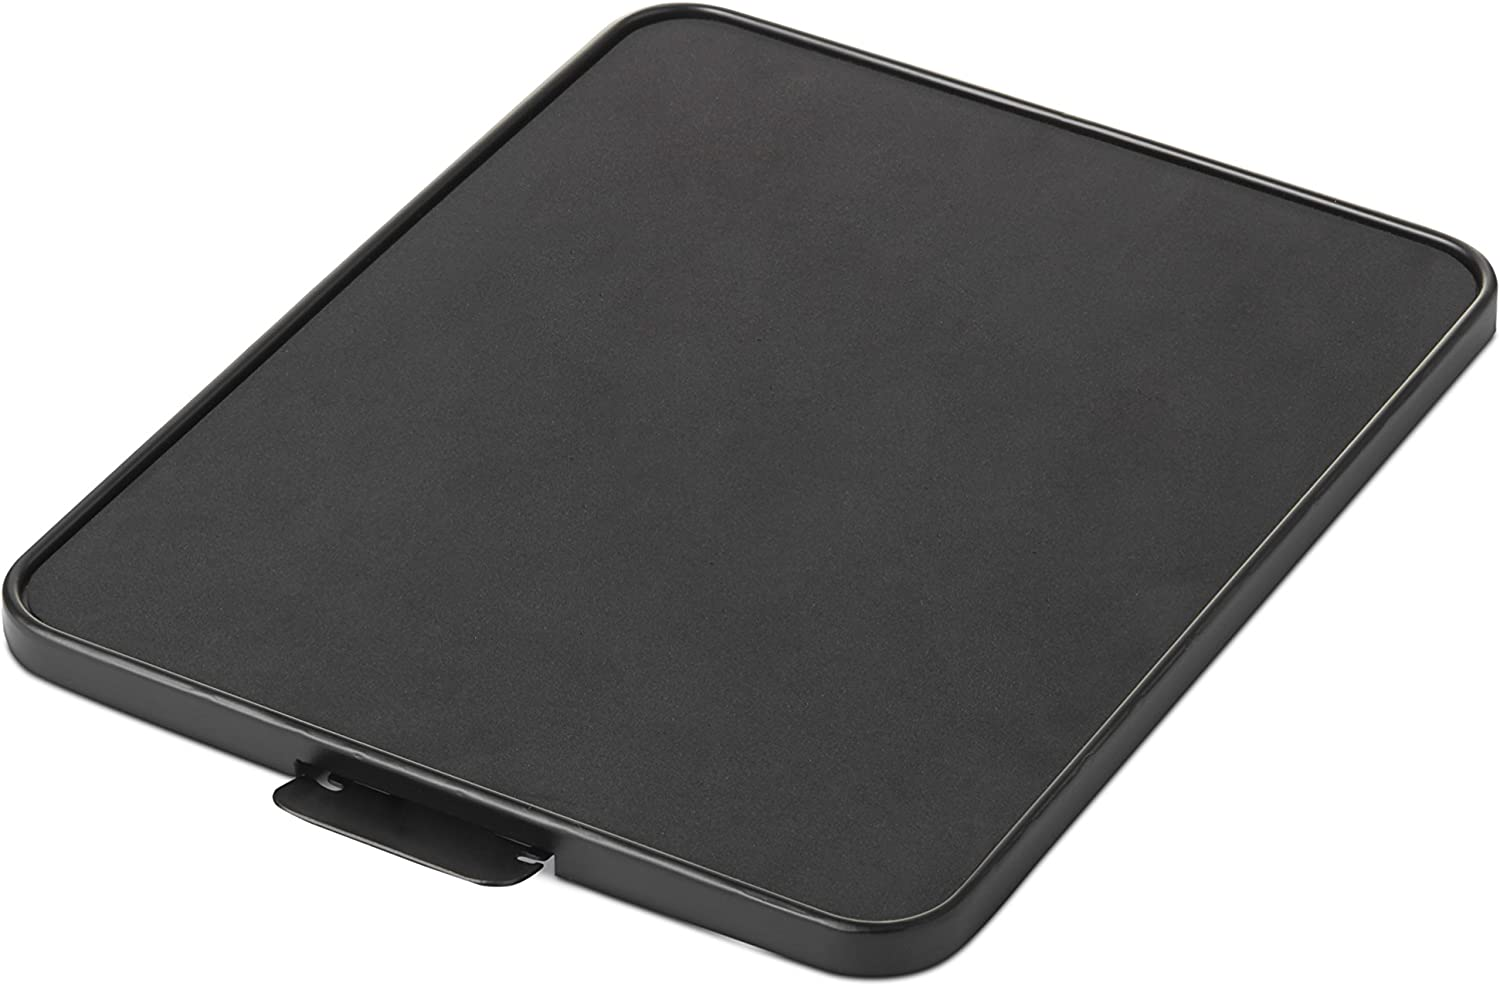 Shop Tray for Rolling Keurig Coffee Makers from Amazon on Openhaus